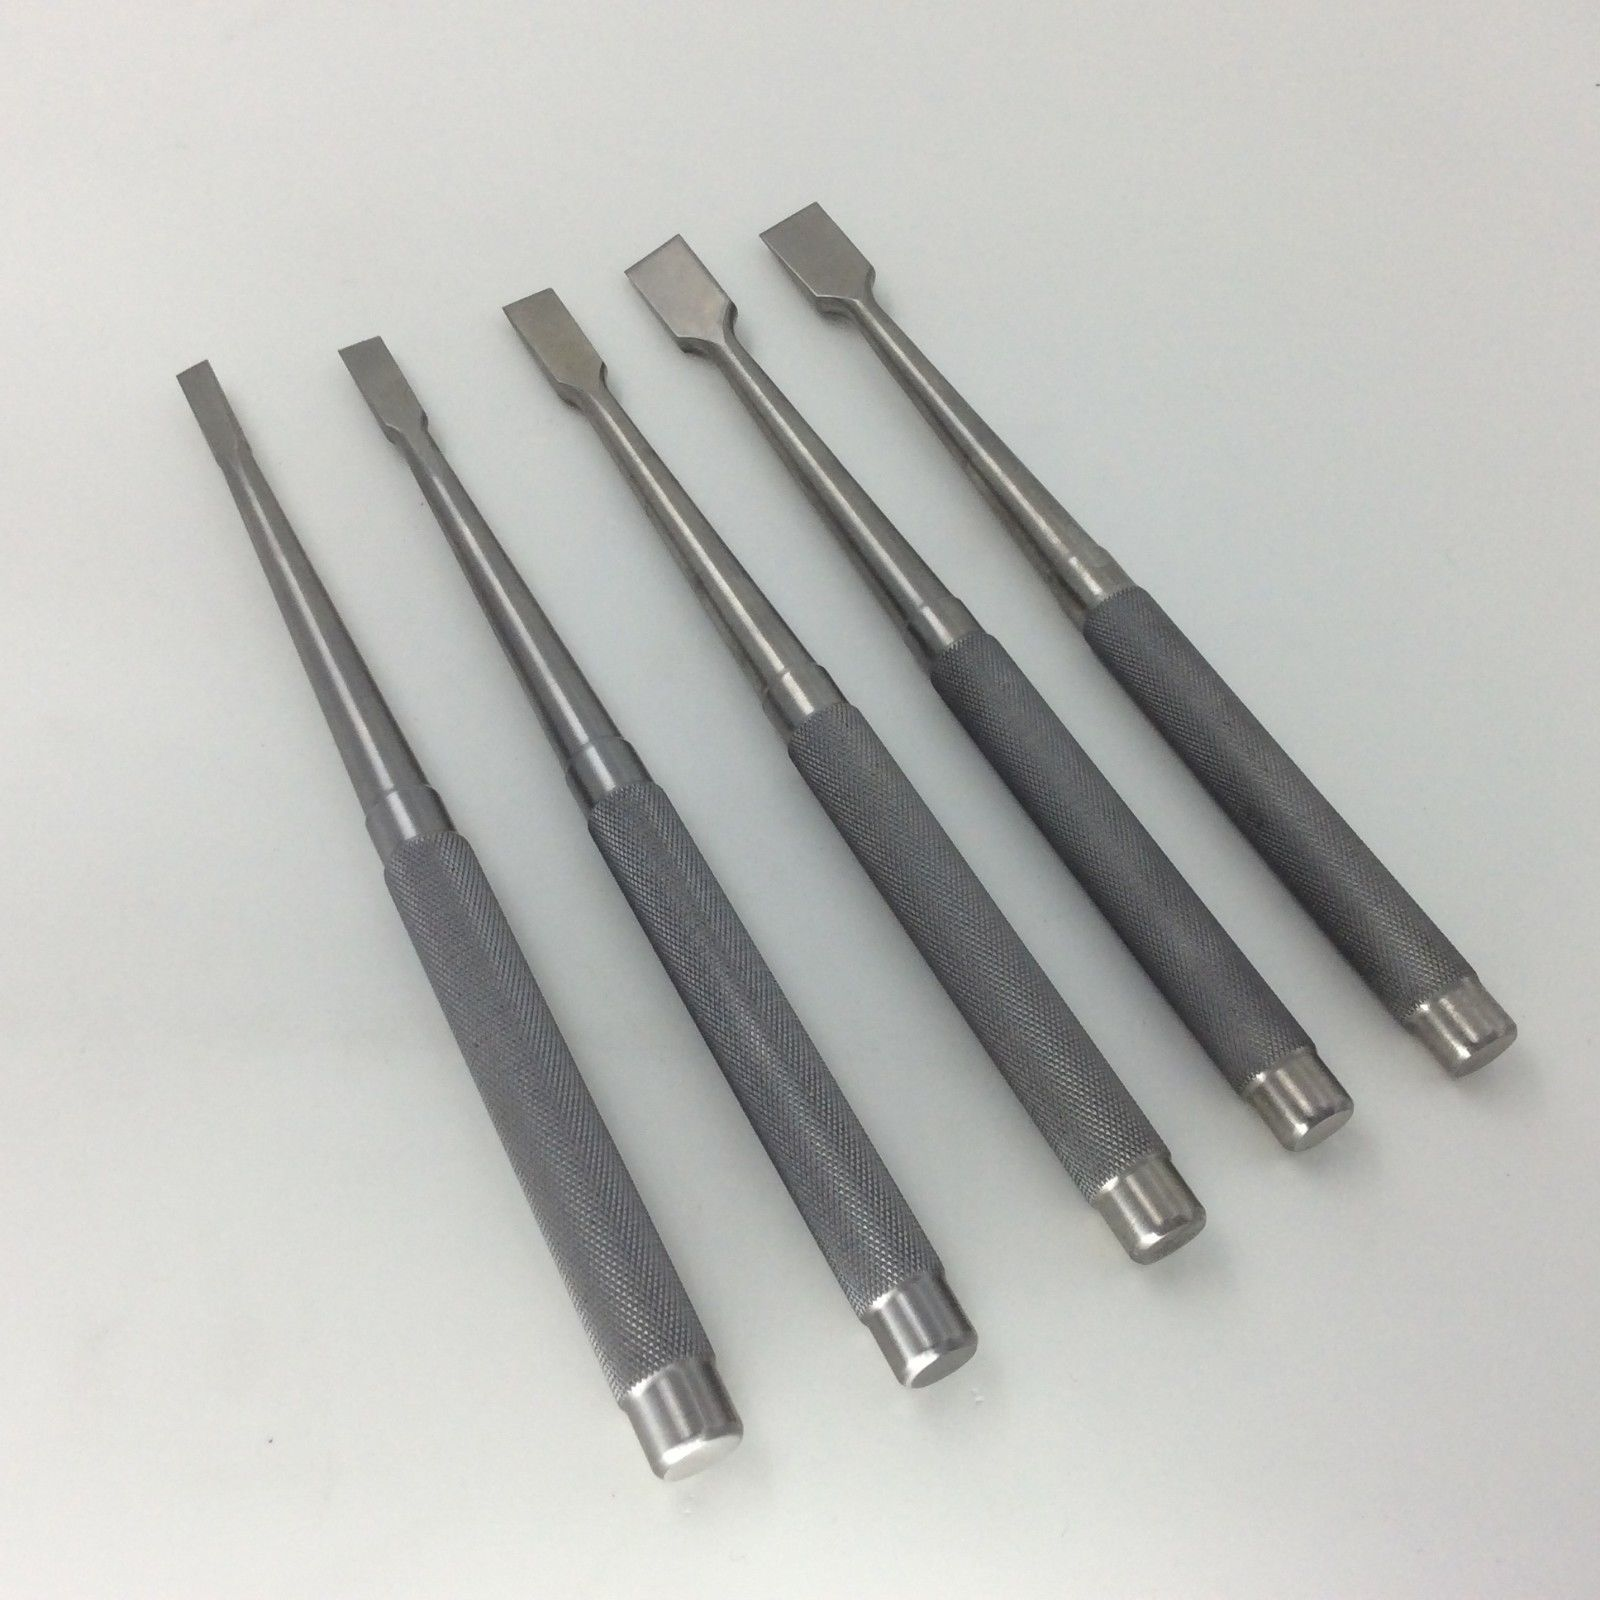 5pcs/set Bone Osteotomes 6mm 8mm 10mm 12mm 15mm Orthopedics Instruments